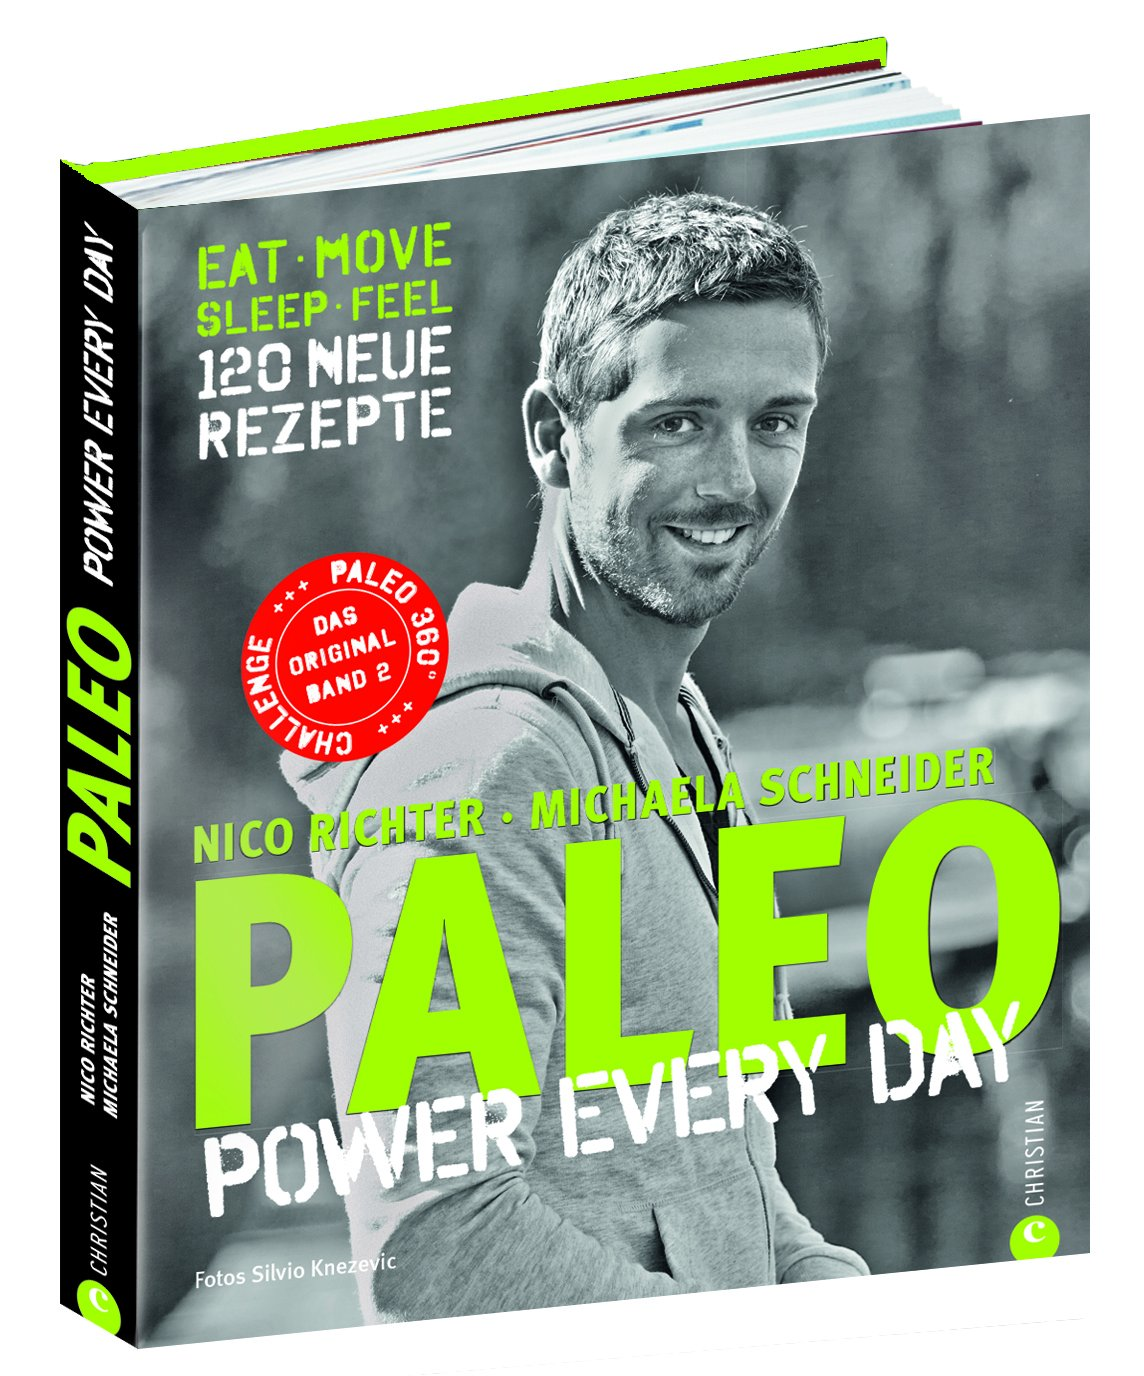 Vorschaubild: Paleo 2 - Steinzeit Diät: Power every day. eat move sleep feel